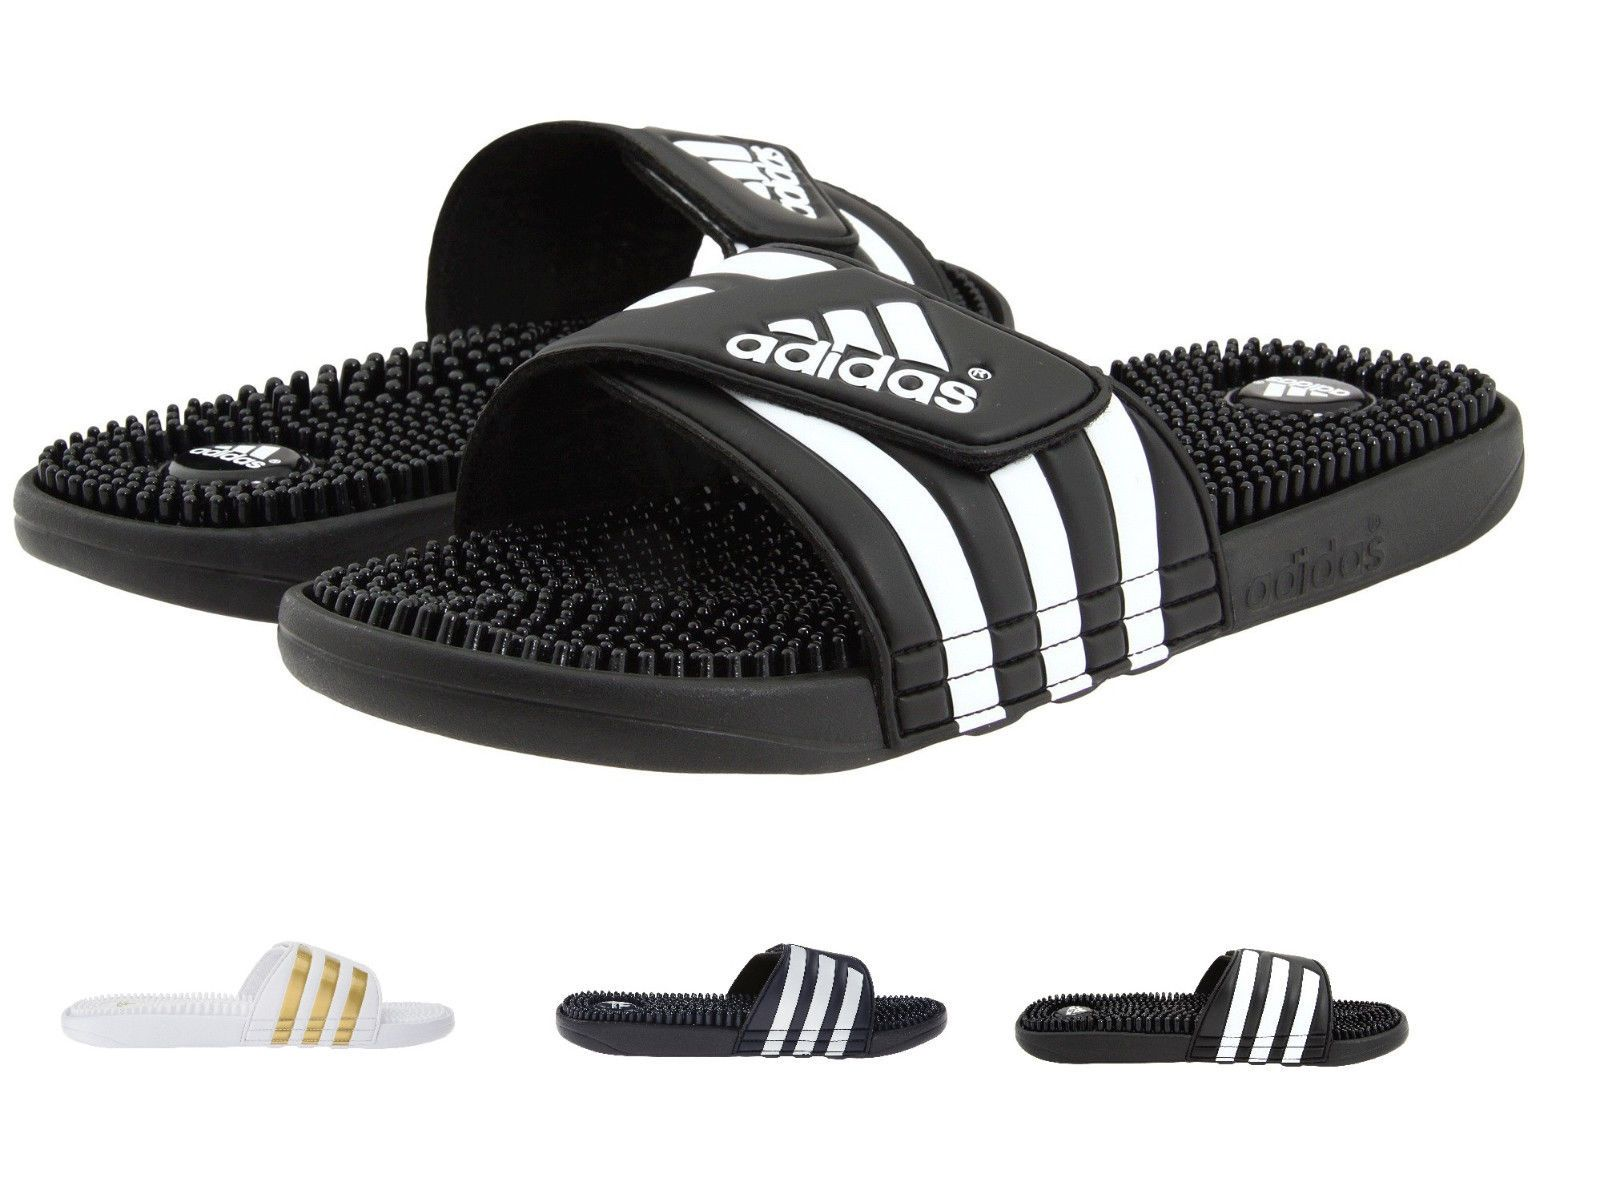 b6aa550a23a fashion Mens Adidas Adissage Black Slides Shower Athletic Sport Sandals  078260 Size 7-15